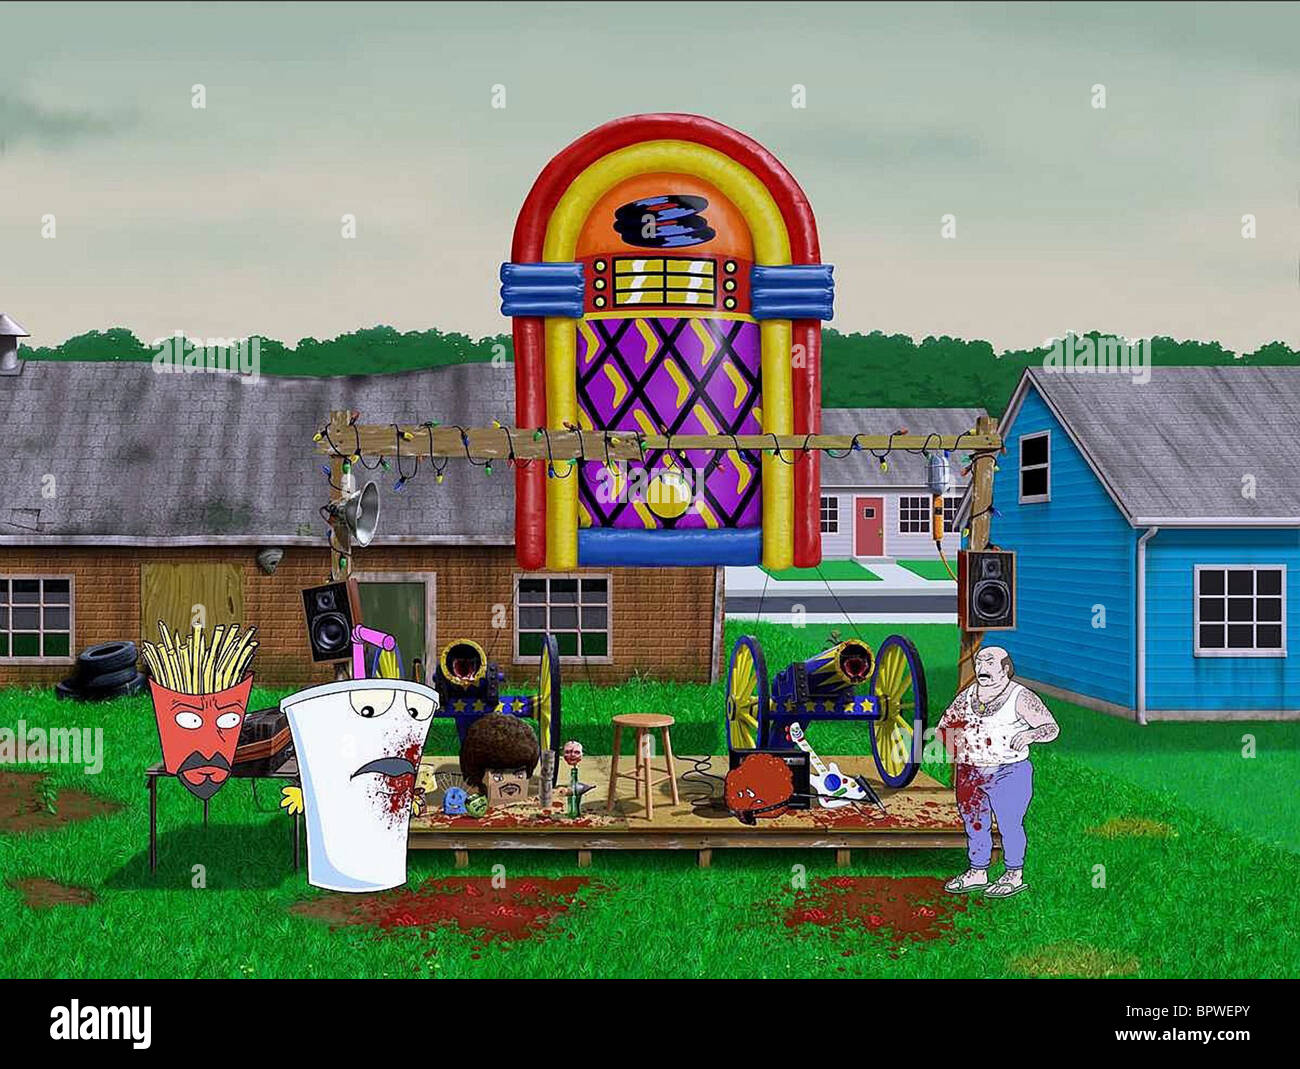 FRYLOCK MASTER SHAKE & MEATWAD IN BACKYARD CONCERT SCENE AQUA TEEN HUNGER  FORCE COLON MOVIE FILM FOR THEATERS (2007)